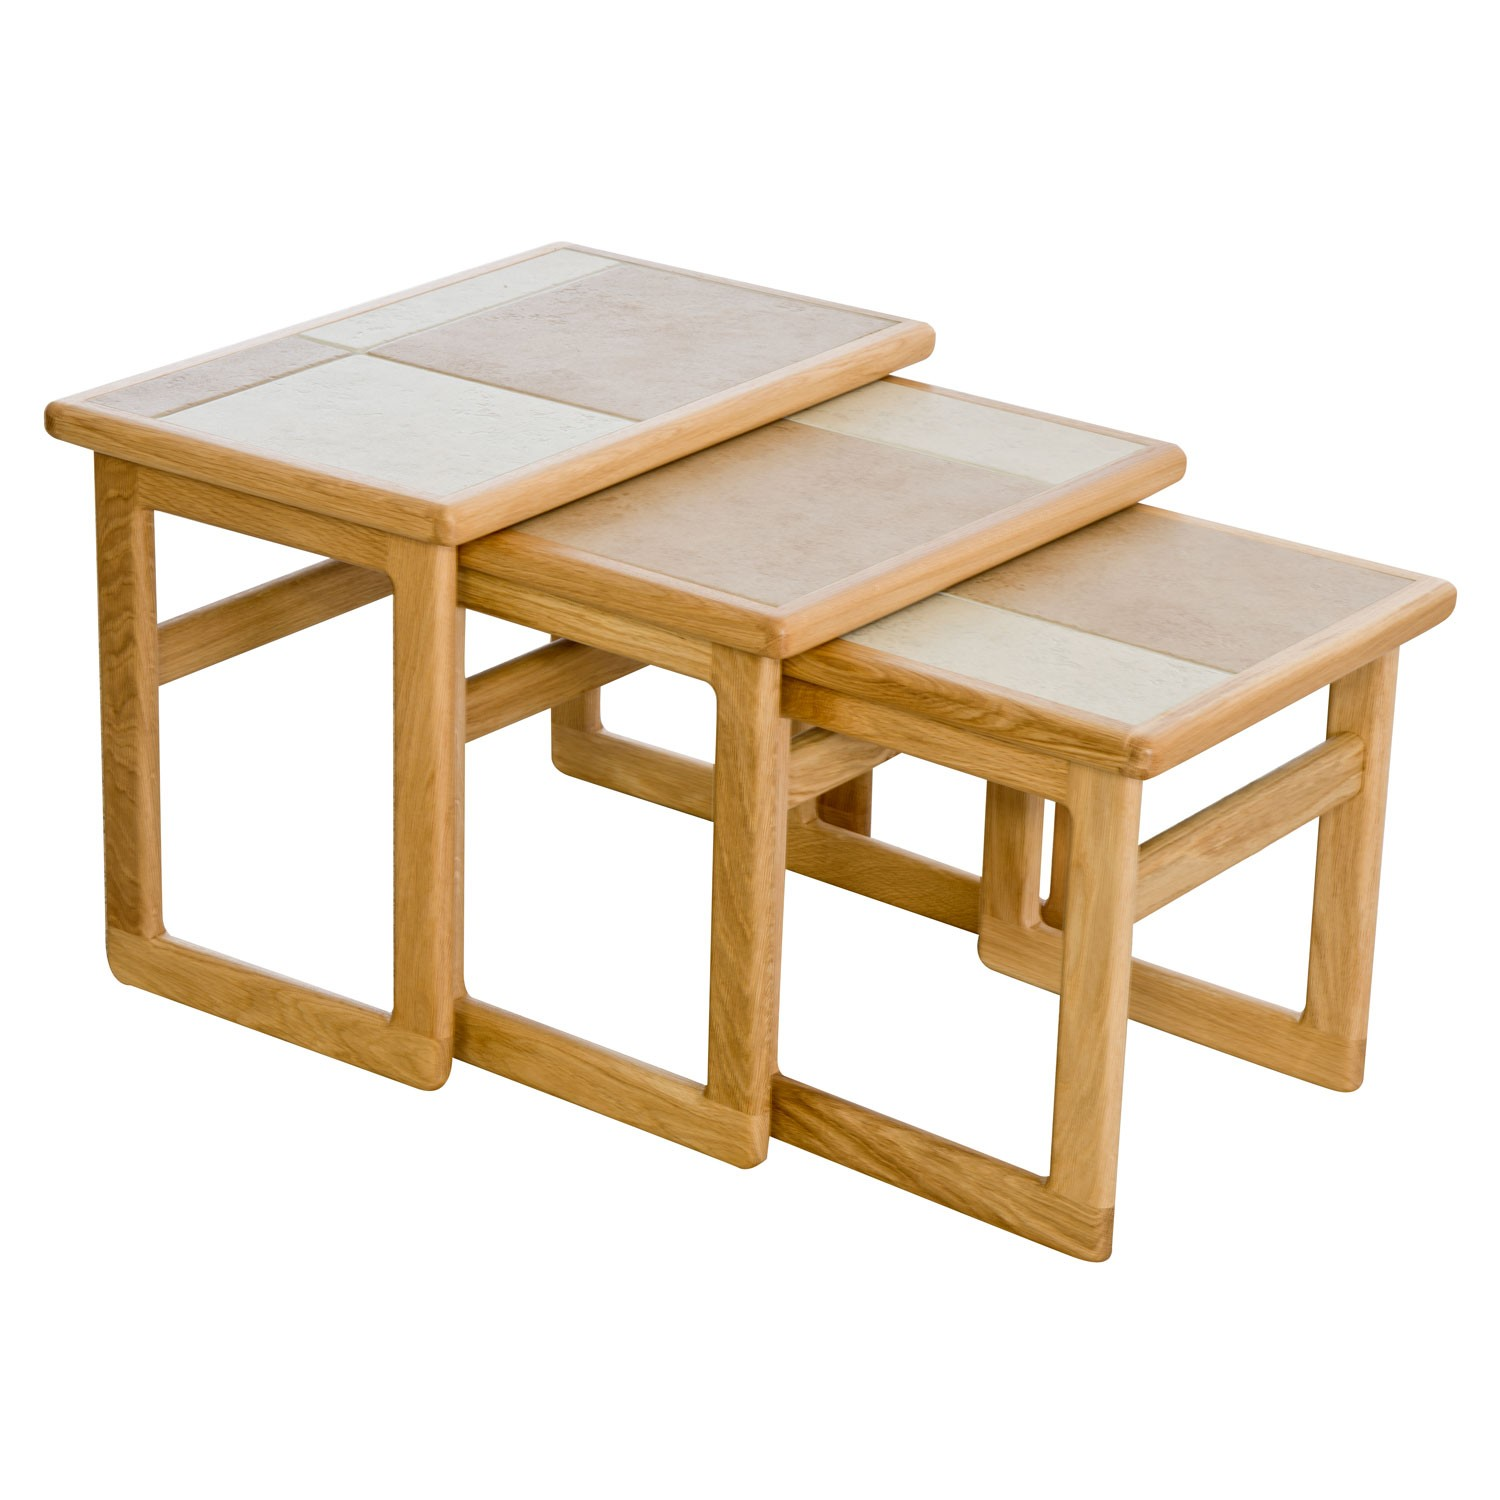 Casa amber tile top small nest of tables leekes for Small nest of tables